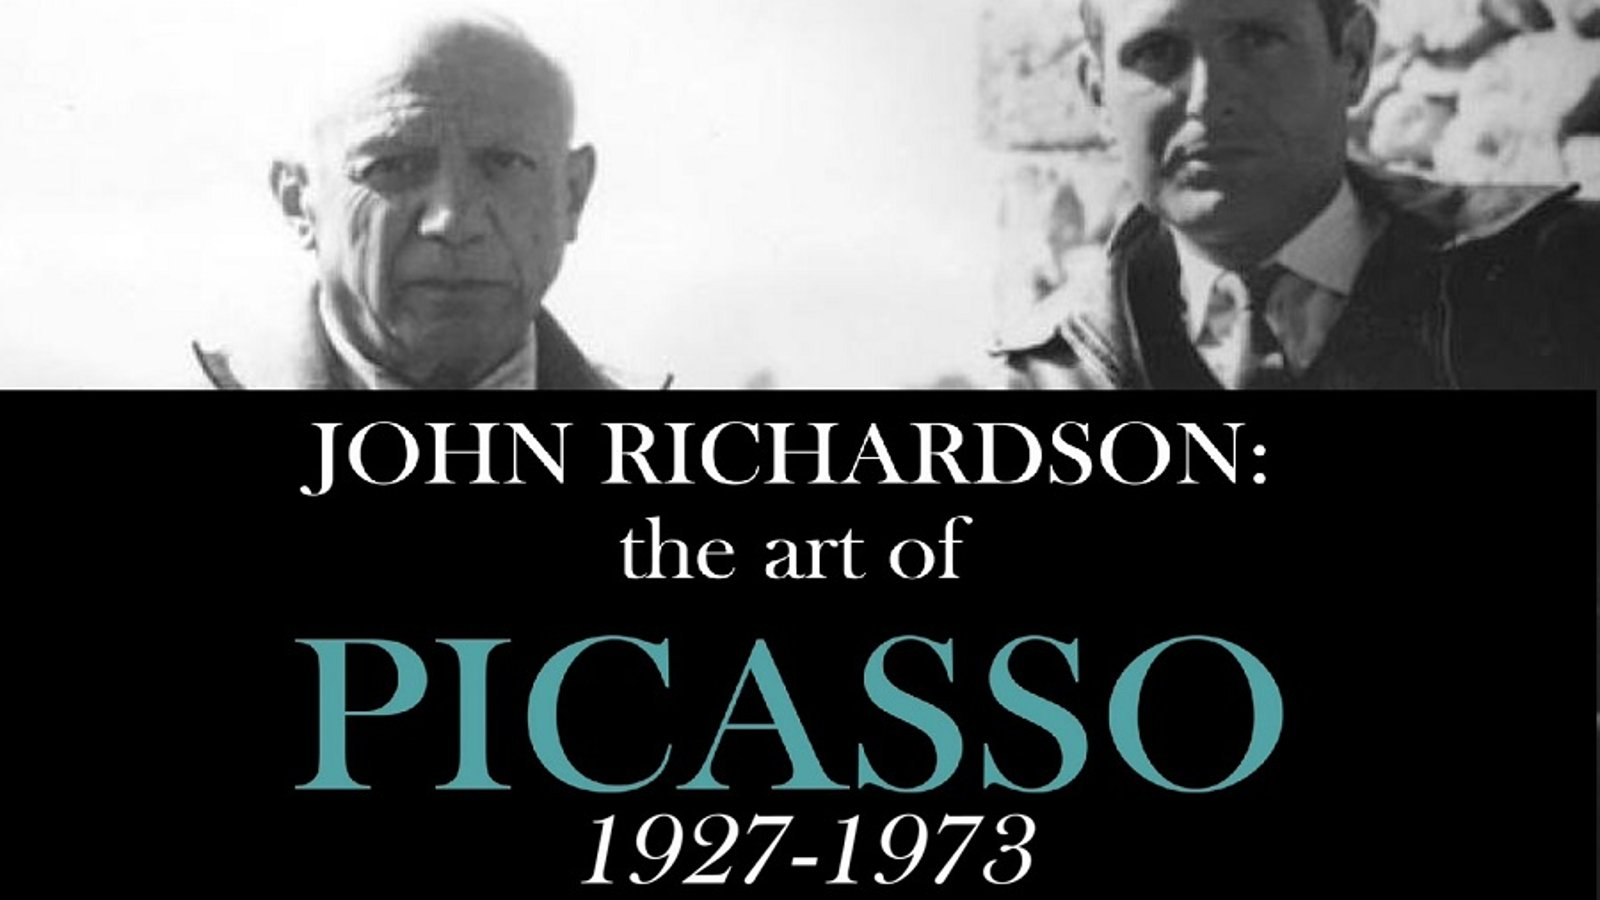 John Richardson: The Art of Picasso: 1927-1973